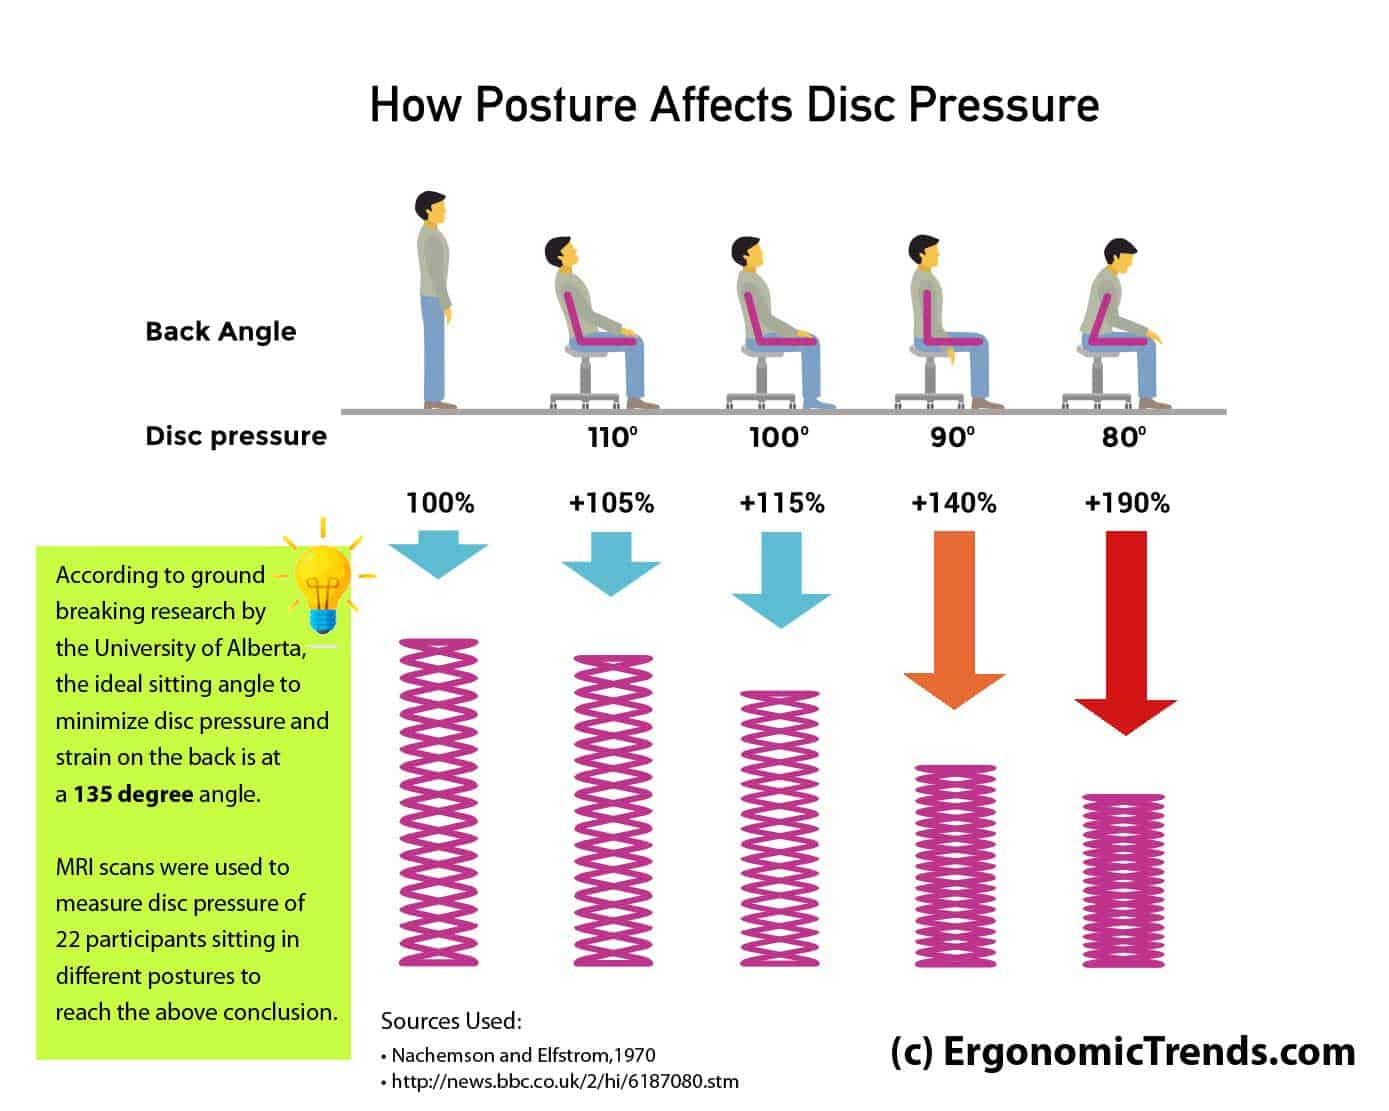 Pressure on the disc and back based on sitting posture and angle. 135 is Ideal.